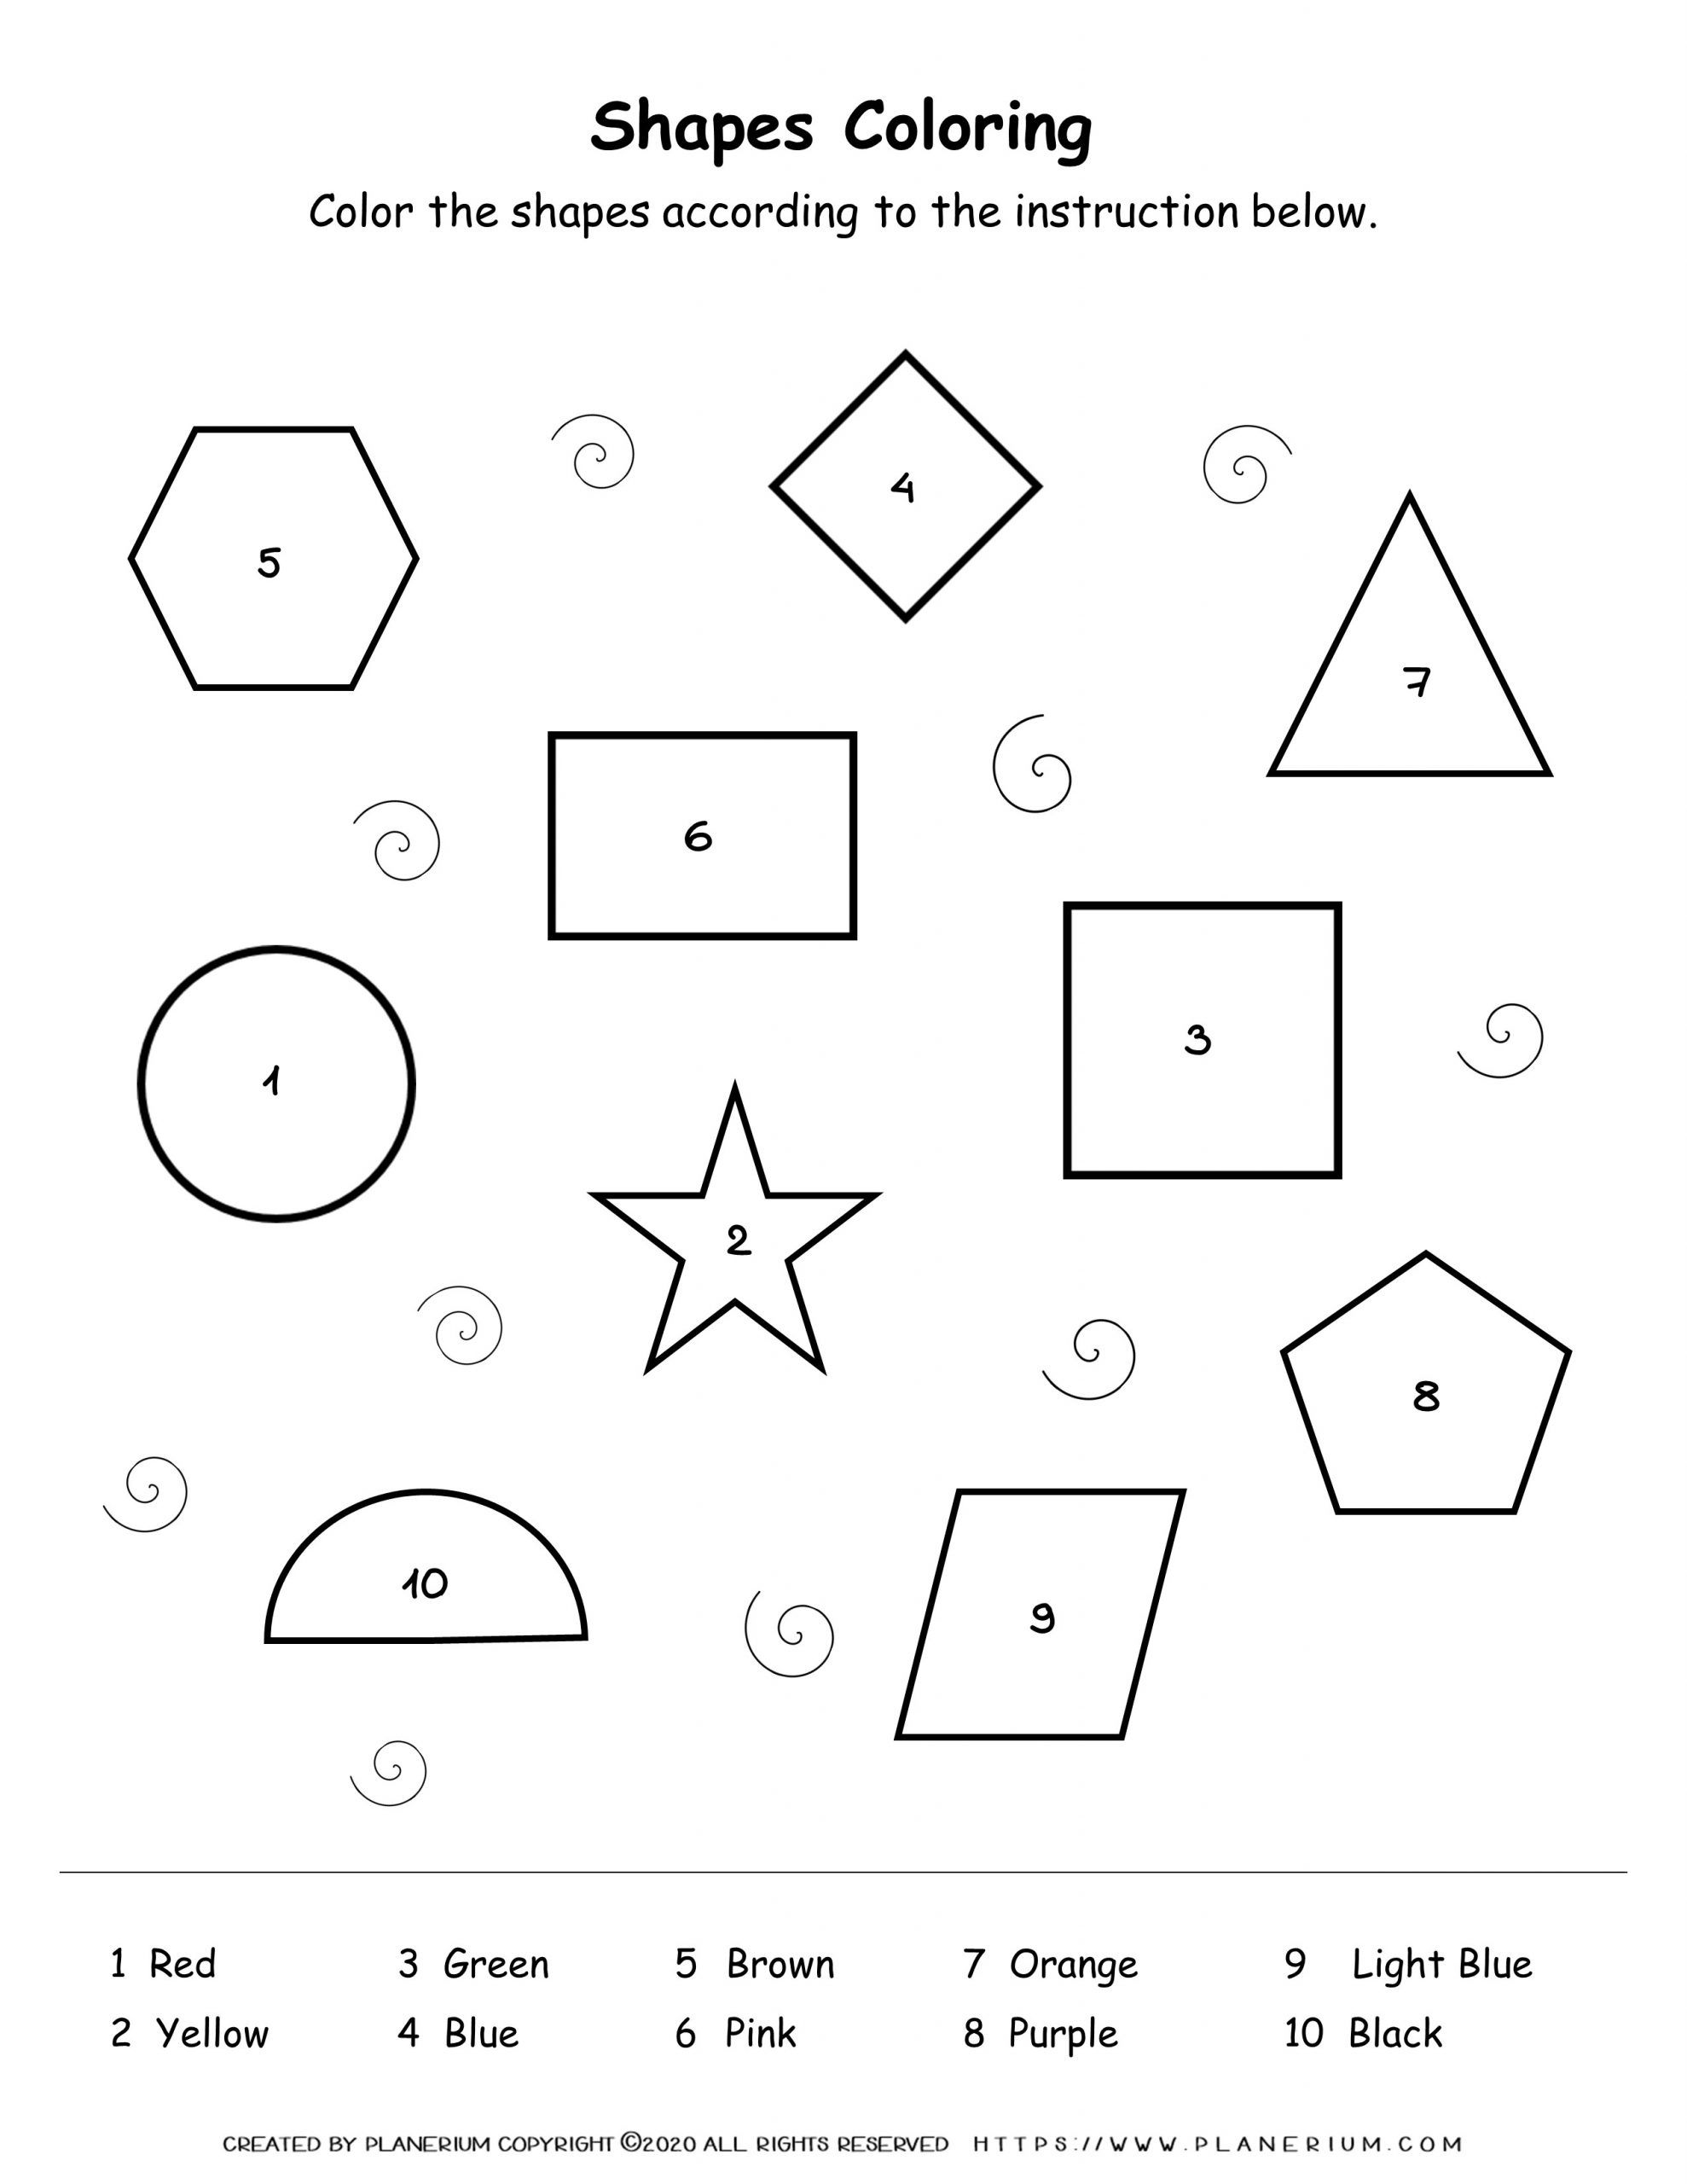 Shapes Coloring By Number Planerium Shapes Activities Color Activities Seasons Worksheets [ 2560 x 1978 Pixel ]